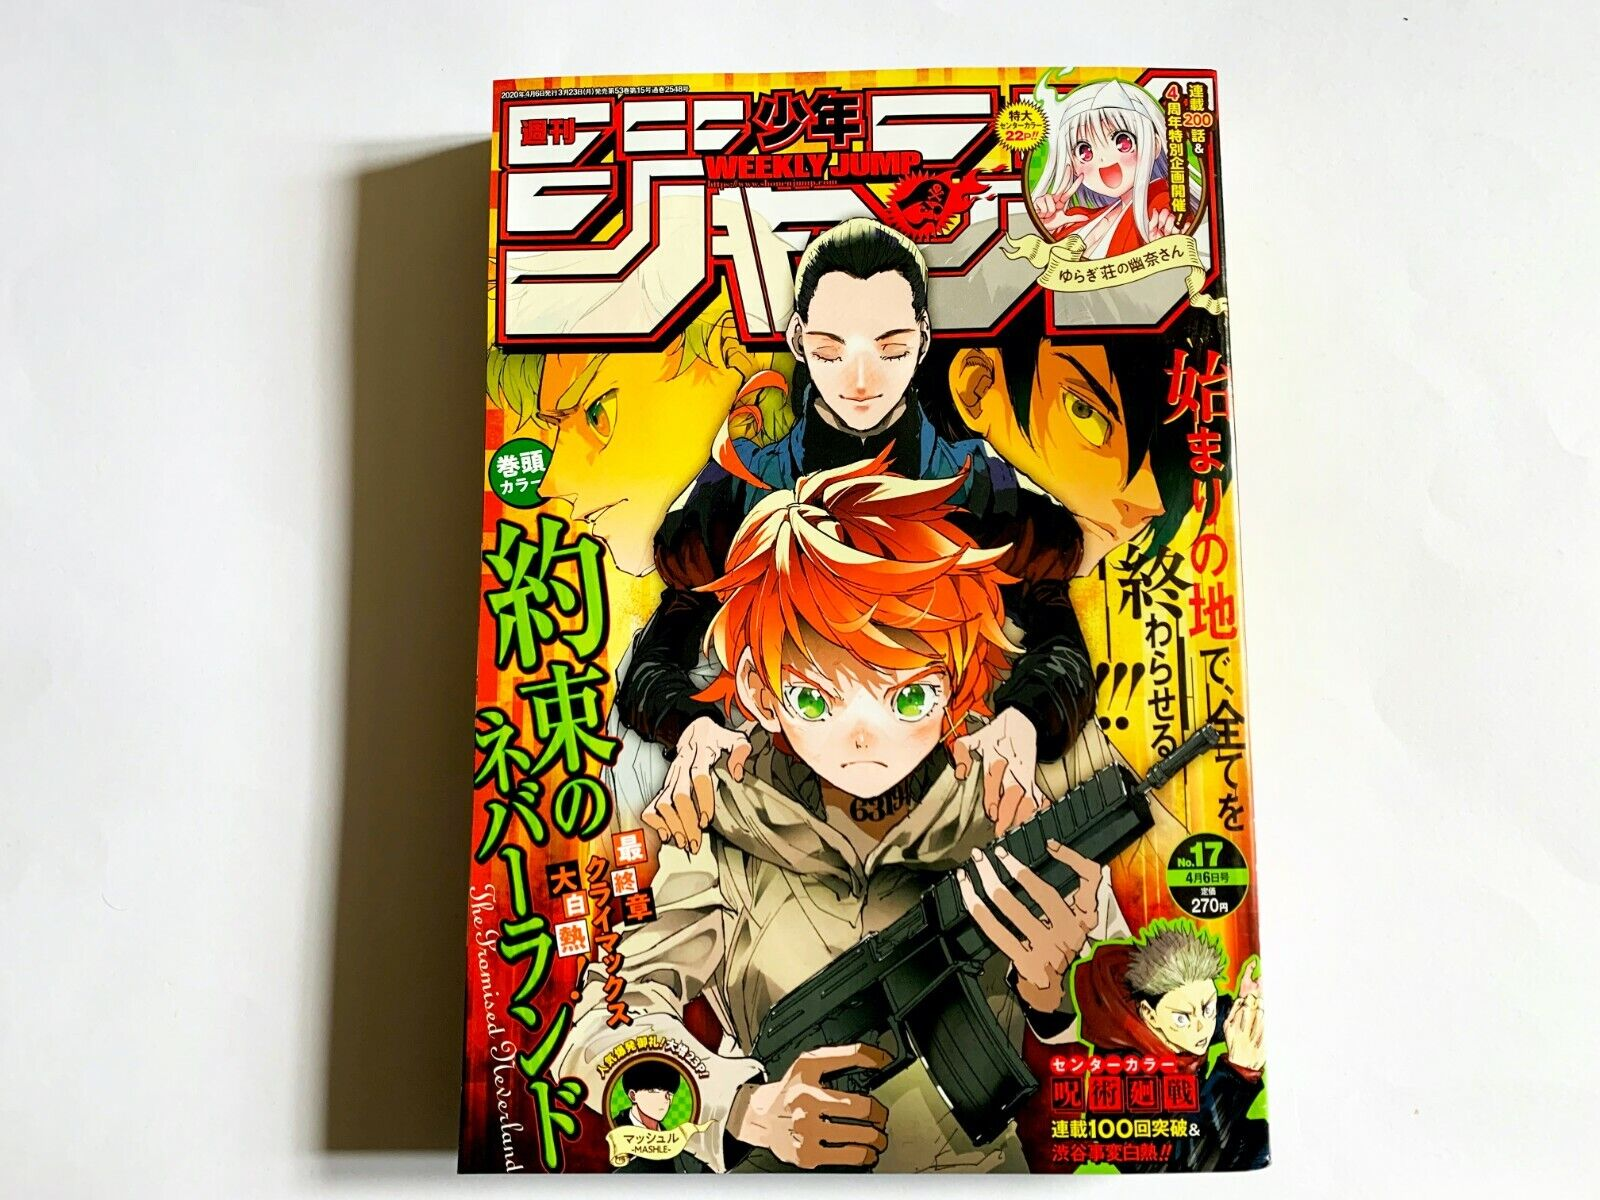 Weekly Shonen Jump Japan No 17 2020 The Promised Neverland Cover Manga Magazine For Sale Online Ebay